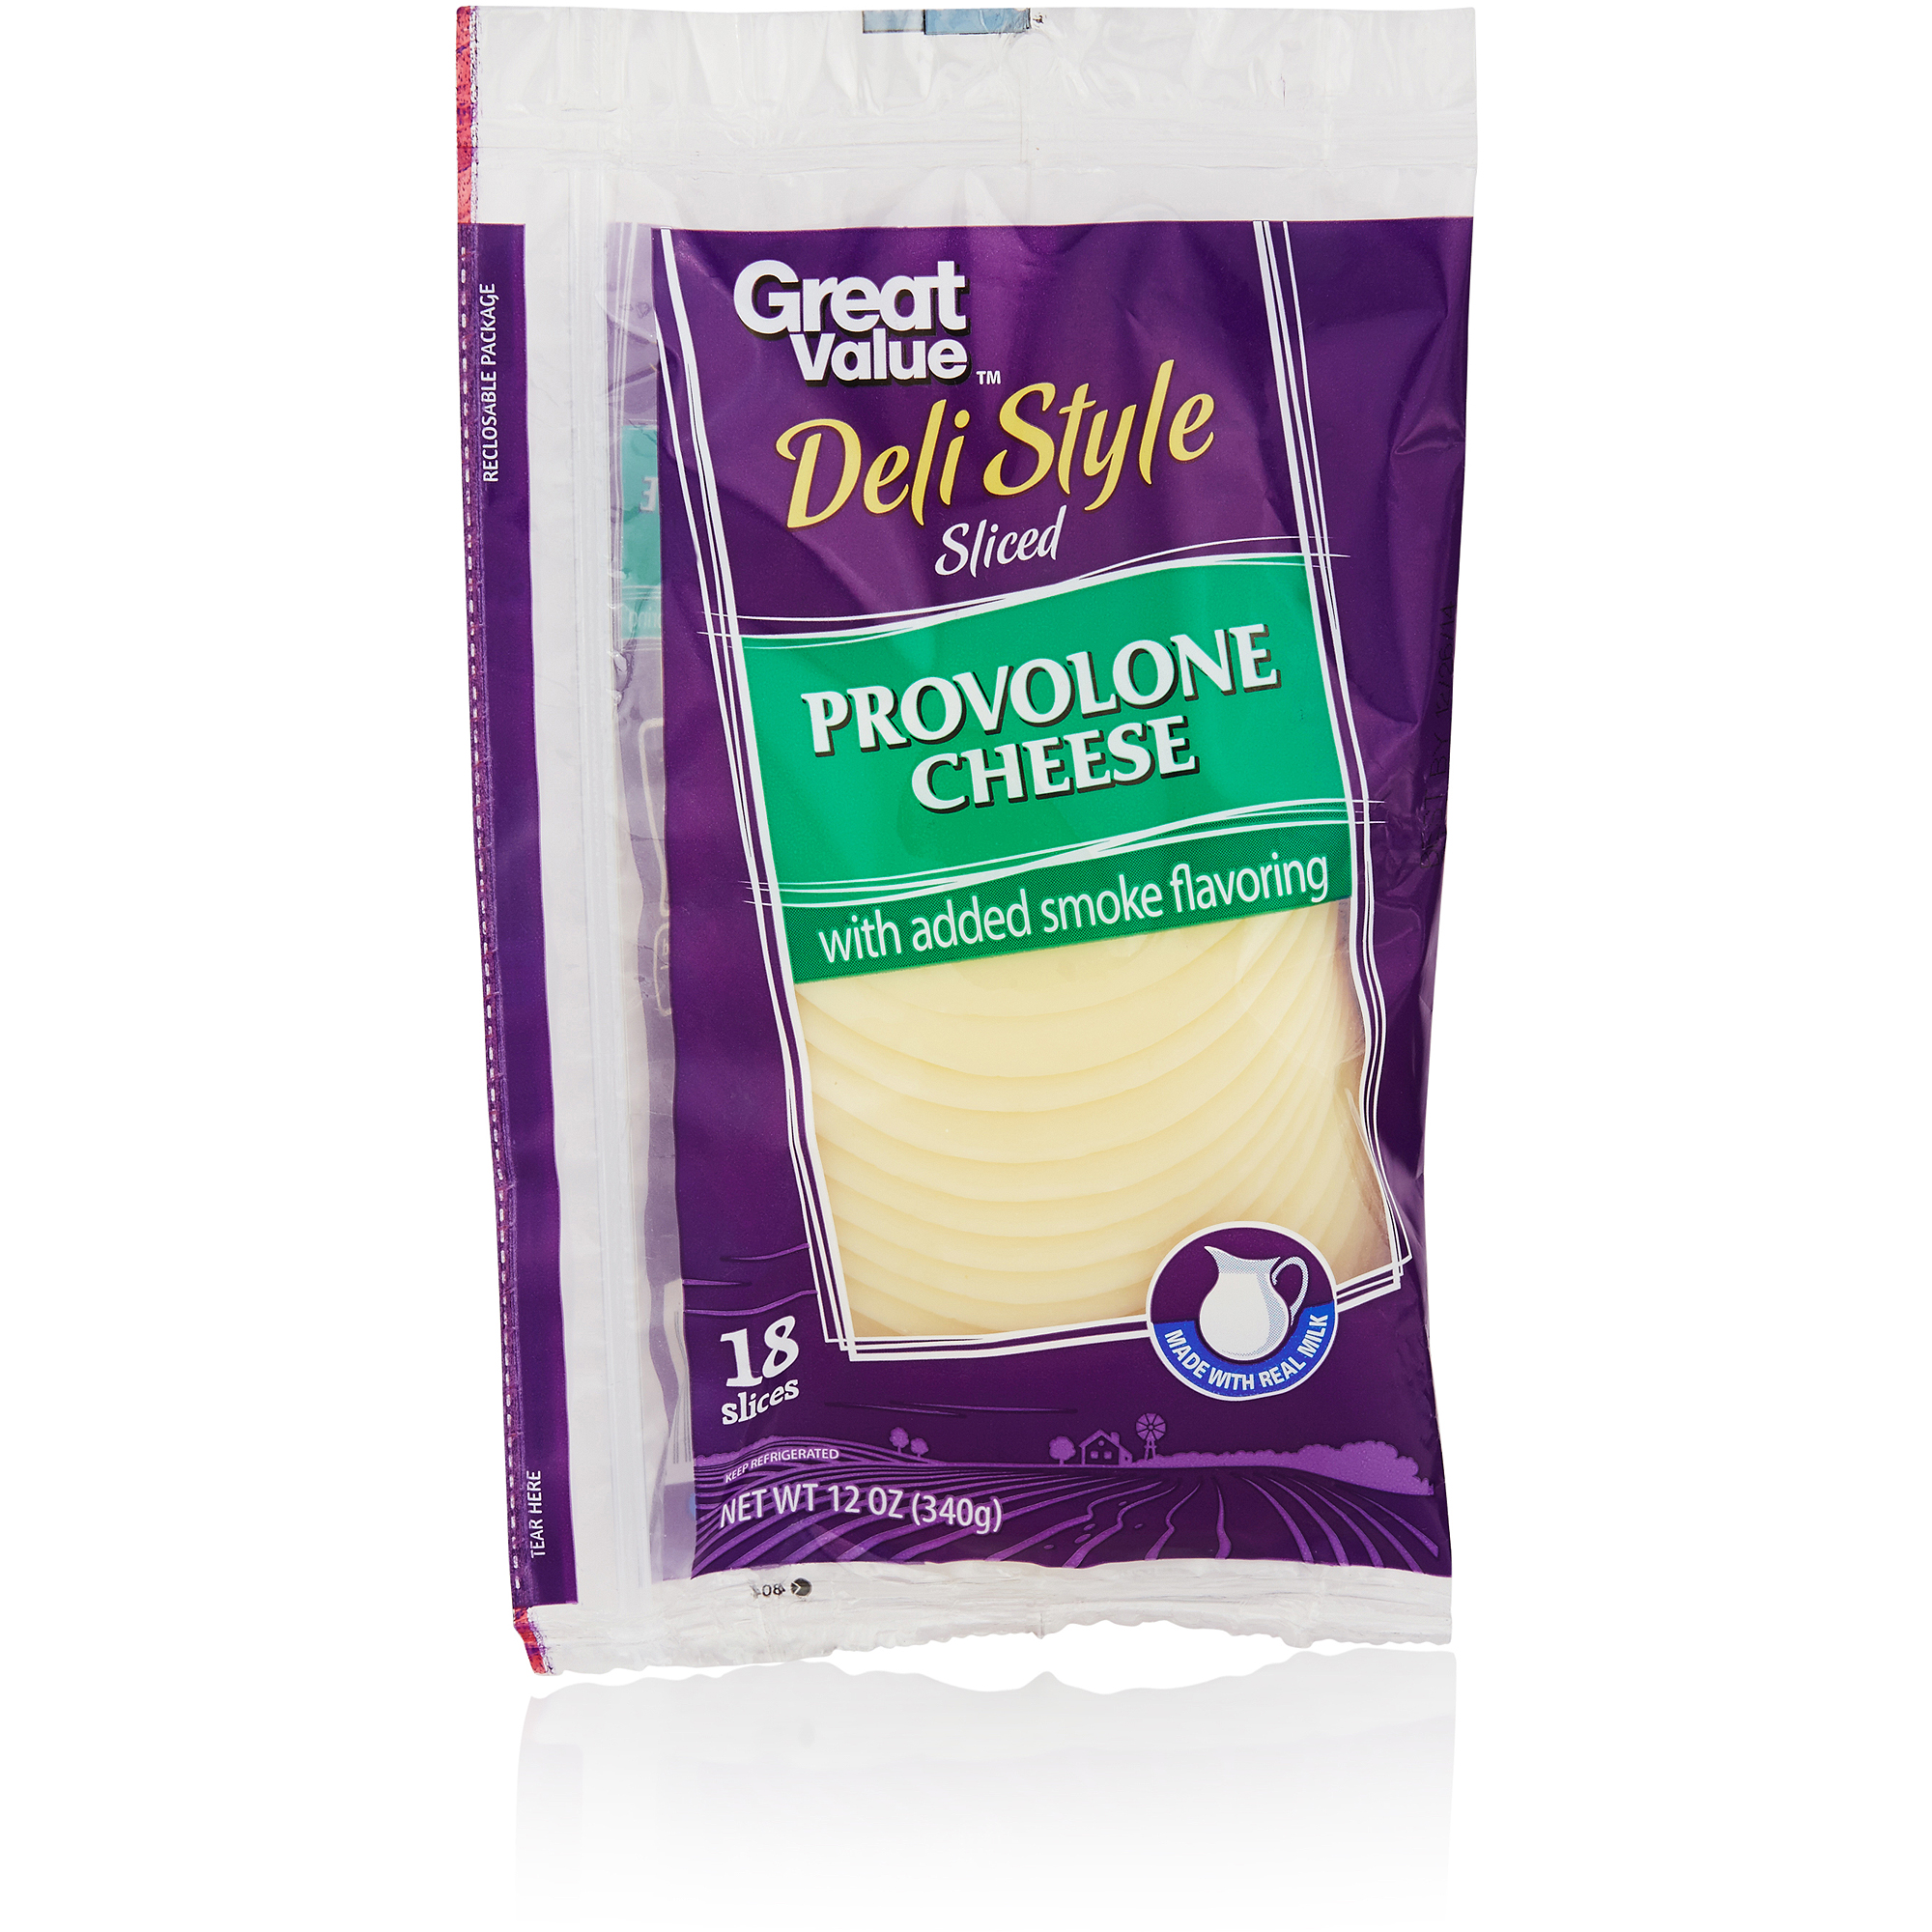 Great Value Provolone Cheese Slices, 18ct